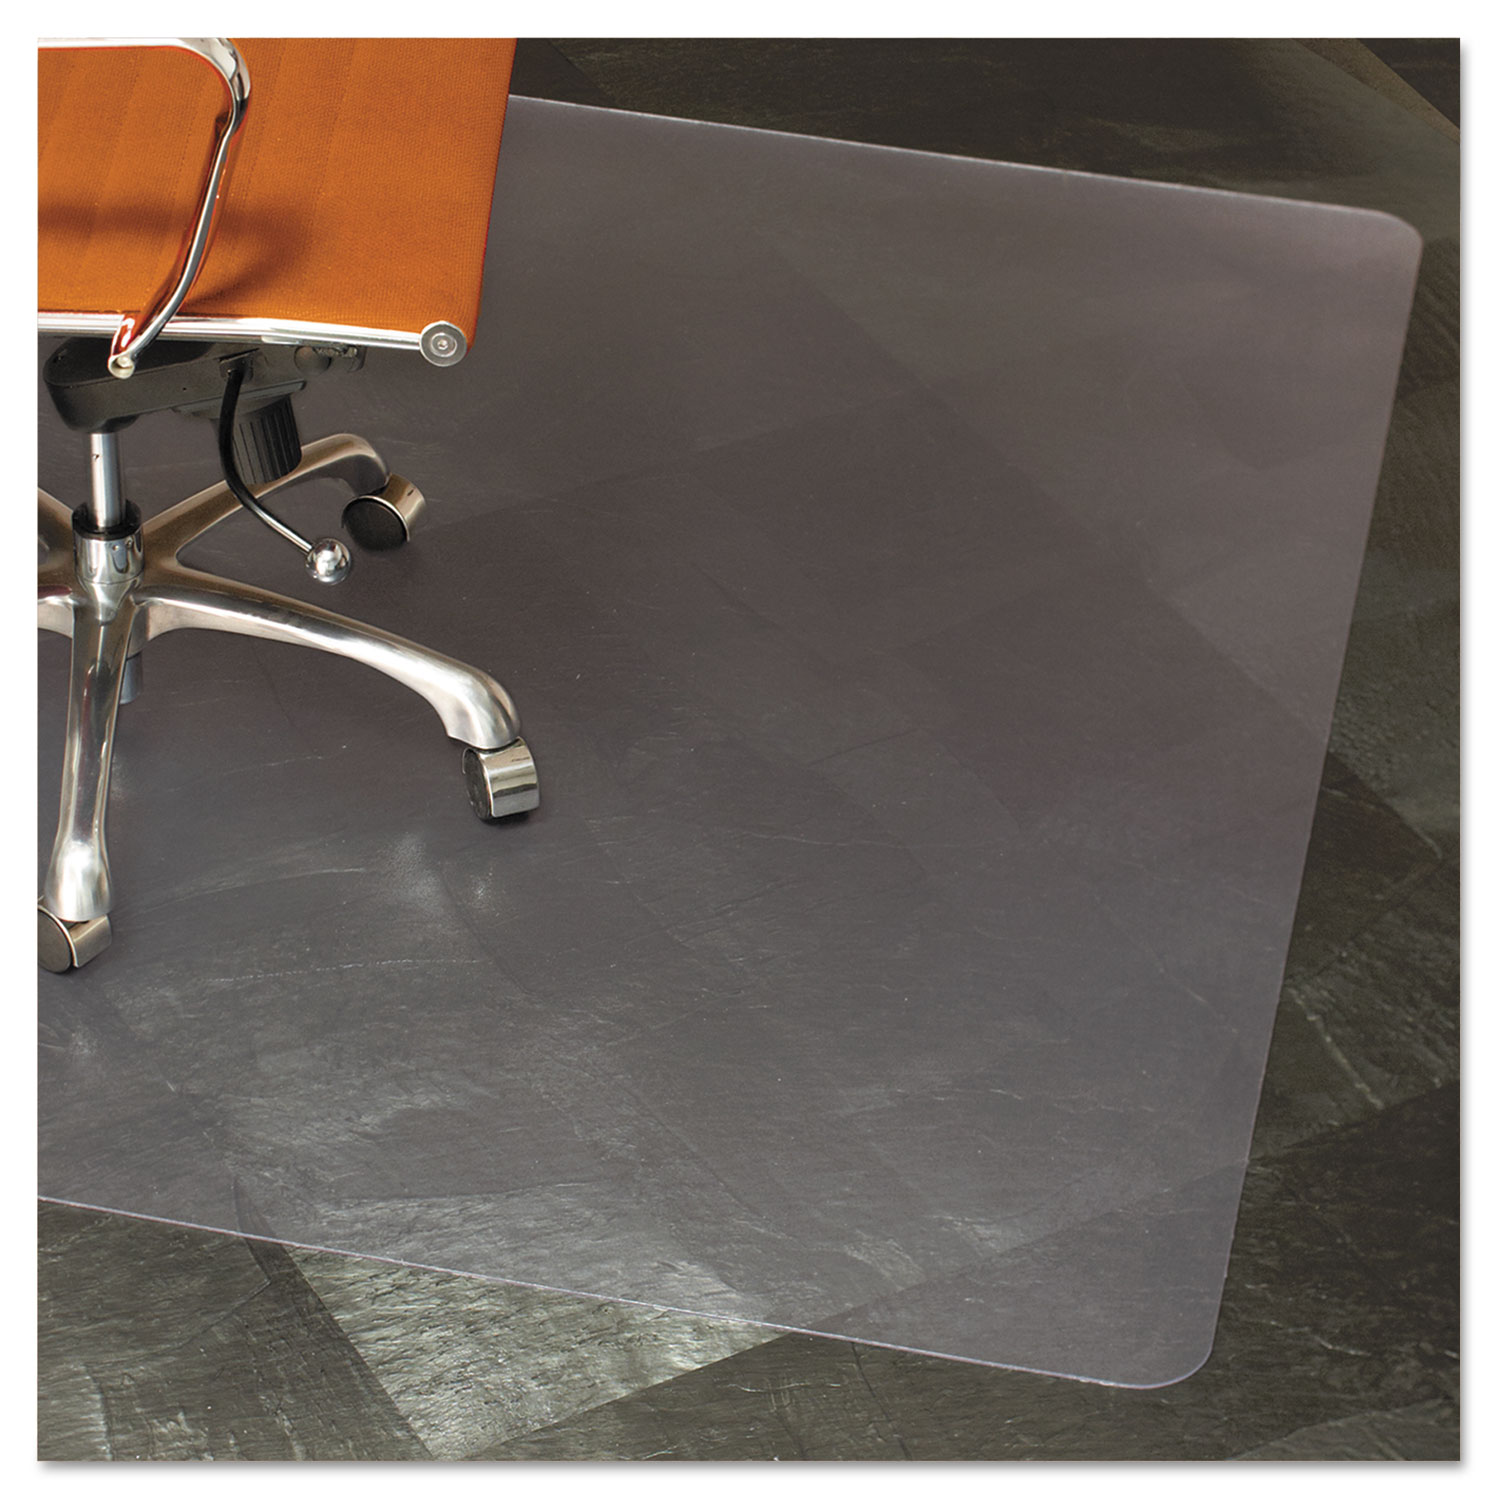 natural origins chair mat for hard floors by es robbinsa esr143007